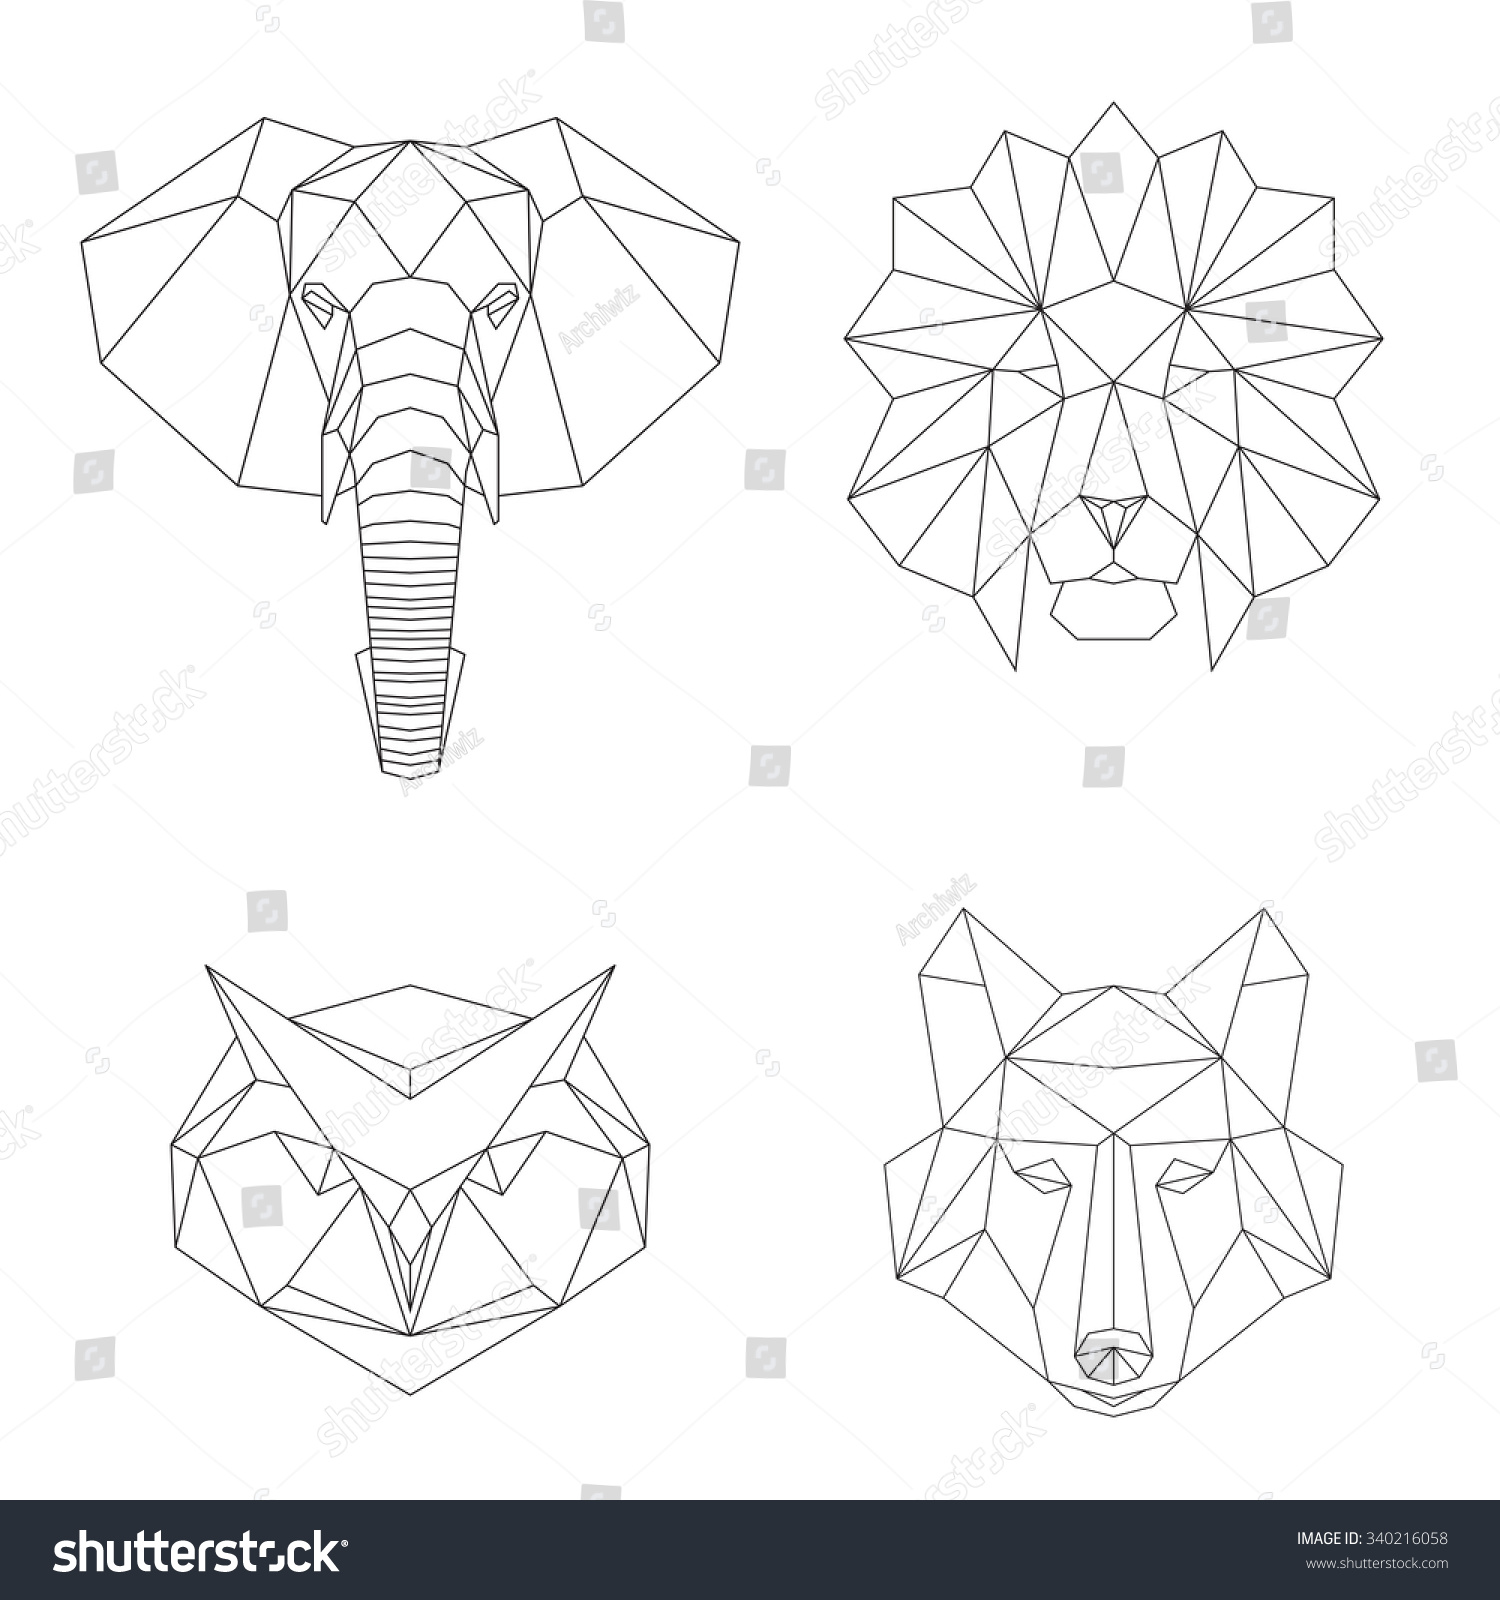 Vector Geometric Low Poly Illustrations Set Image